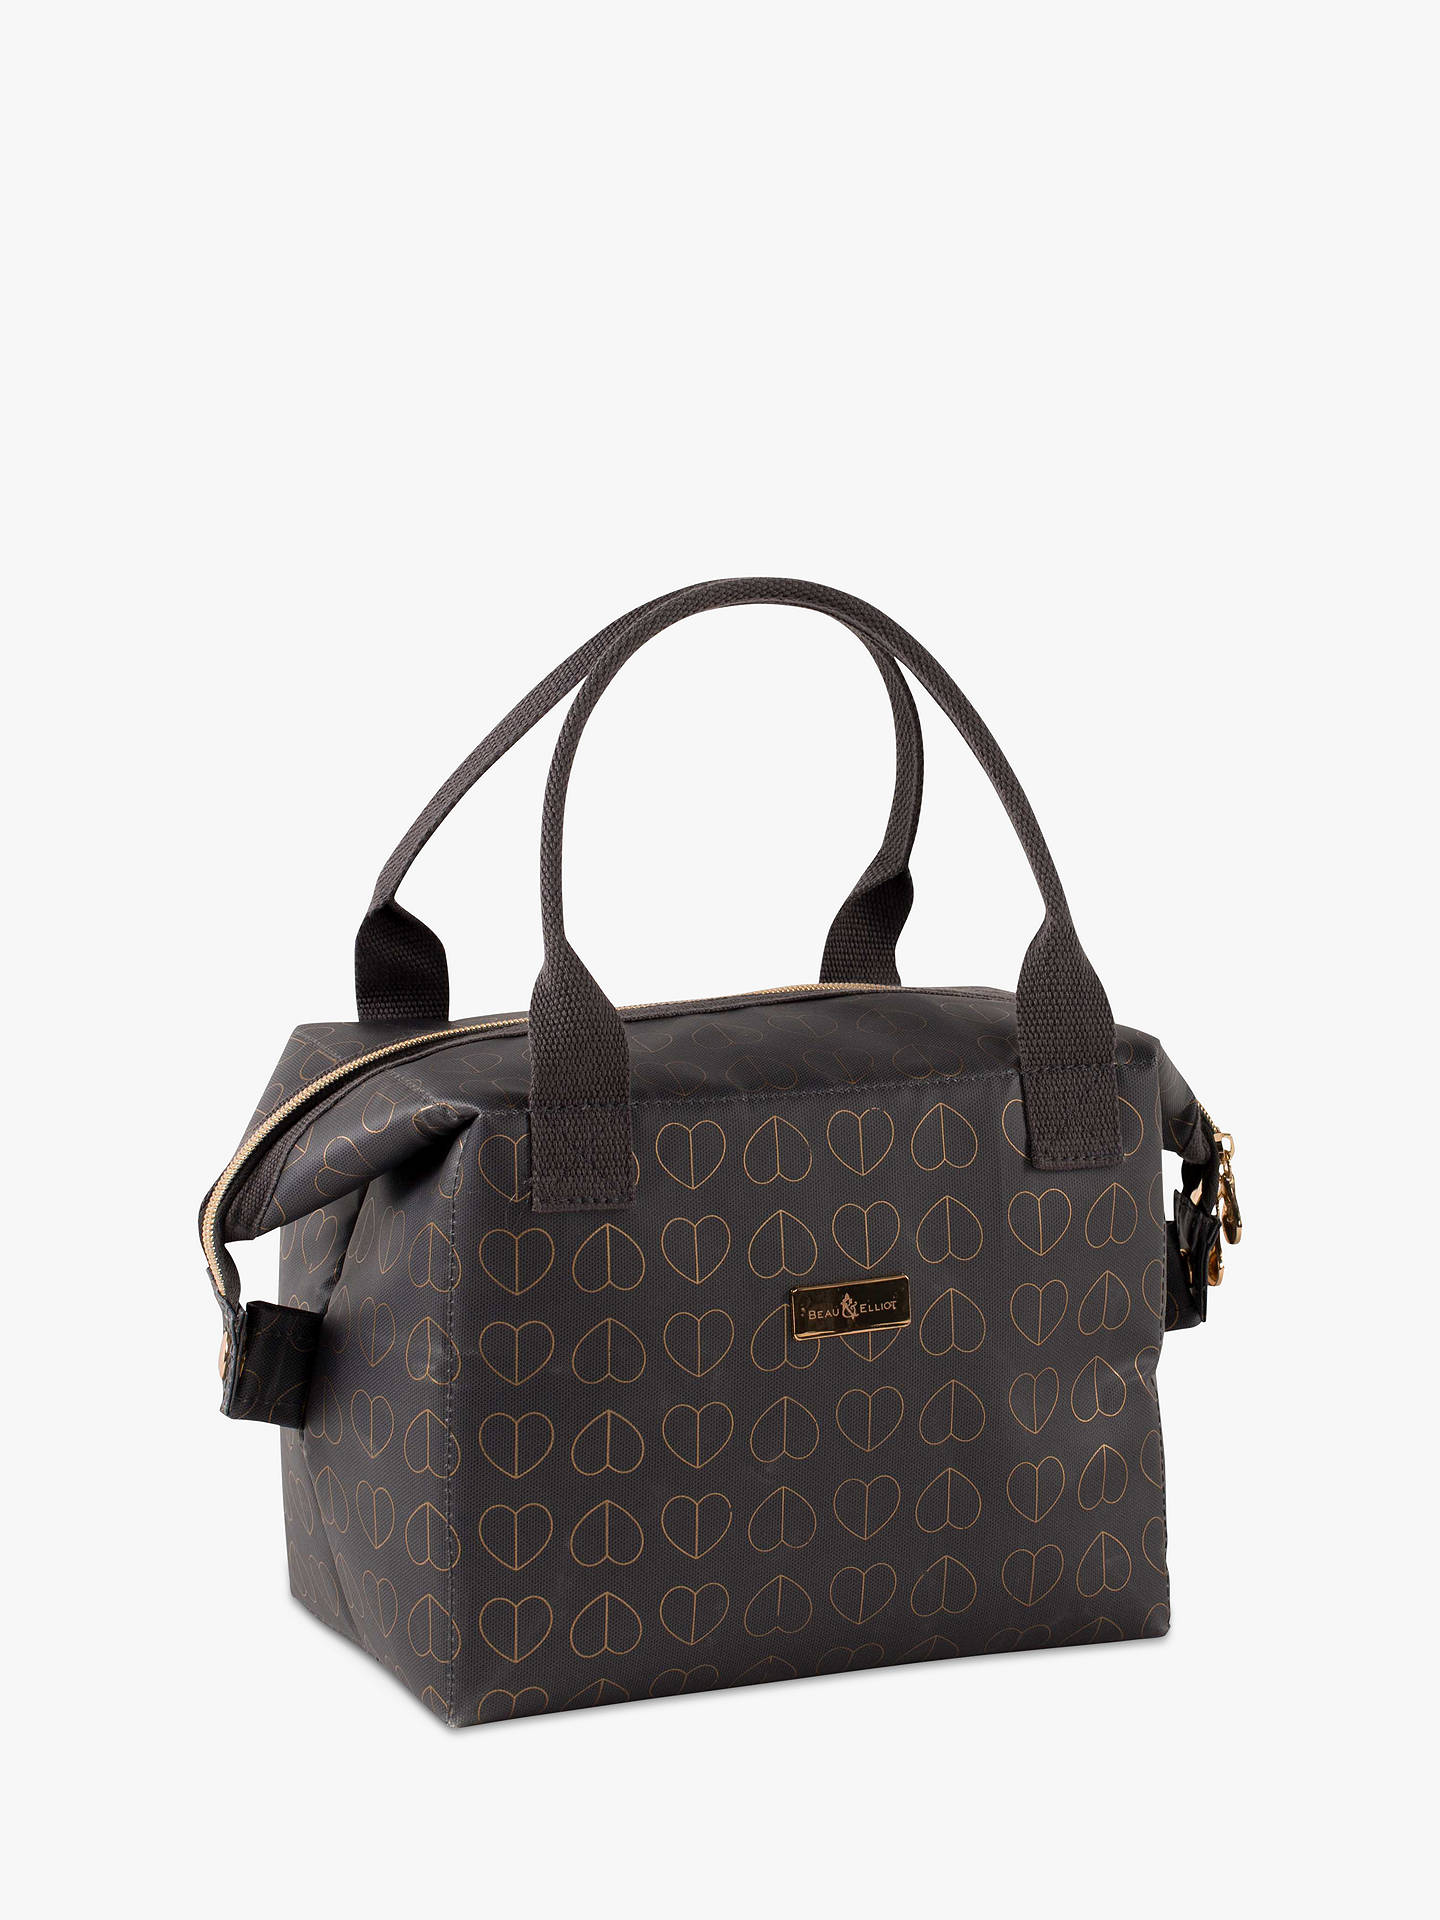 Buy Beau & Elliot Champagne Edit Convertible Lunch Cooler Tote Bag, Grey, 8L Online at johnlewis.com